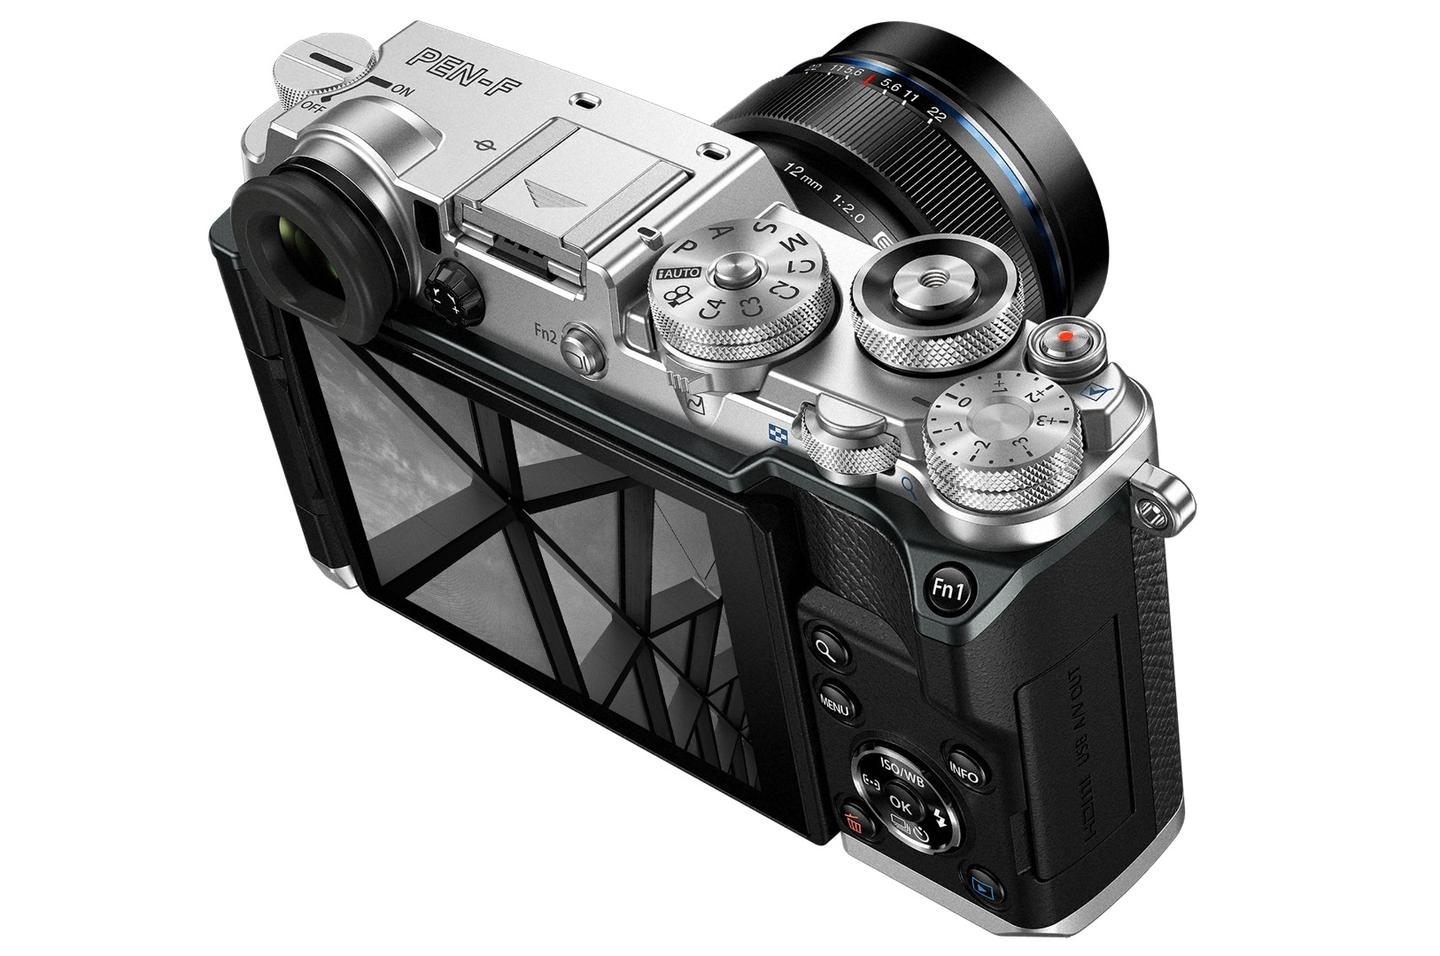 The Olympus PEN-F features metal construction, switches and dials